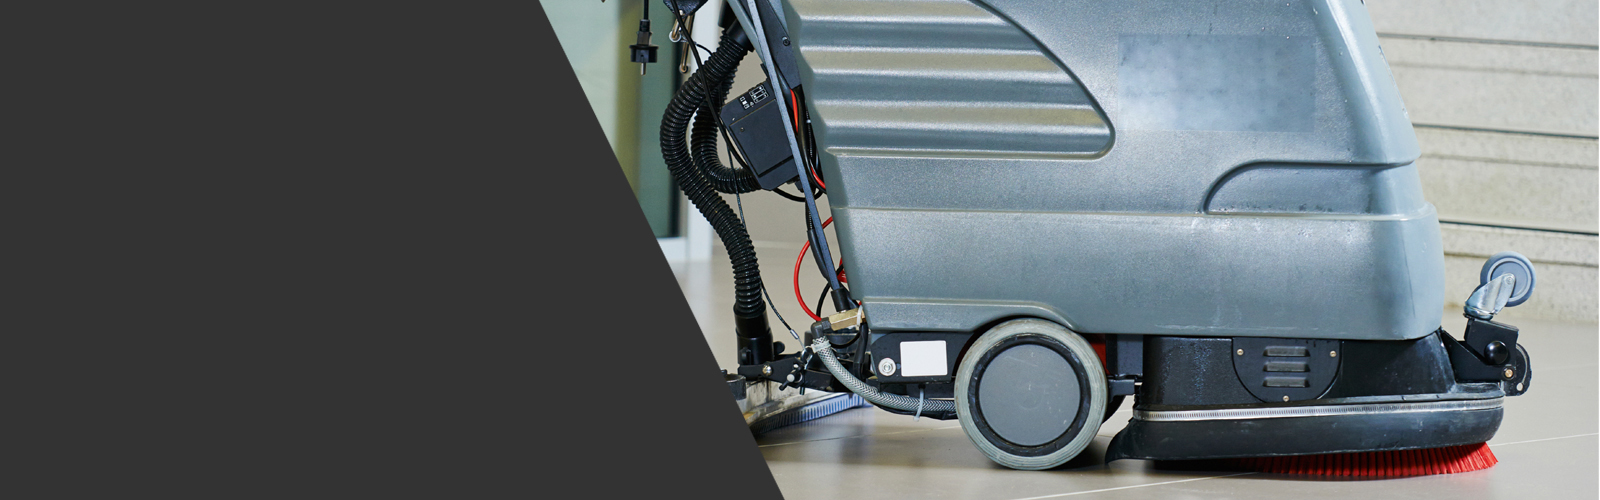 OEM, aftermarket parts for floor machines